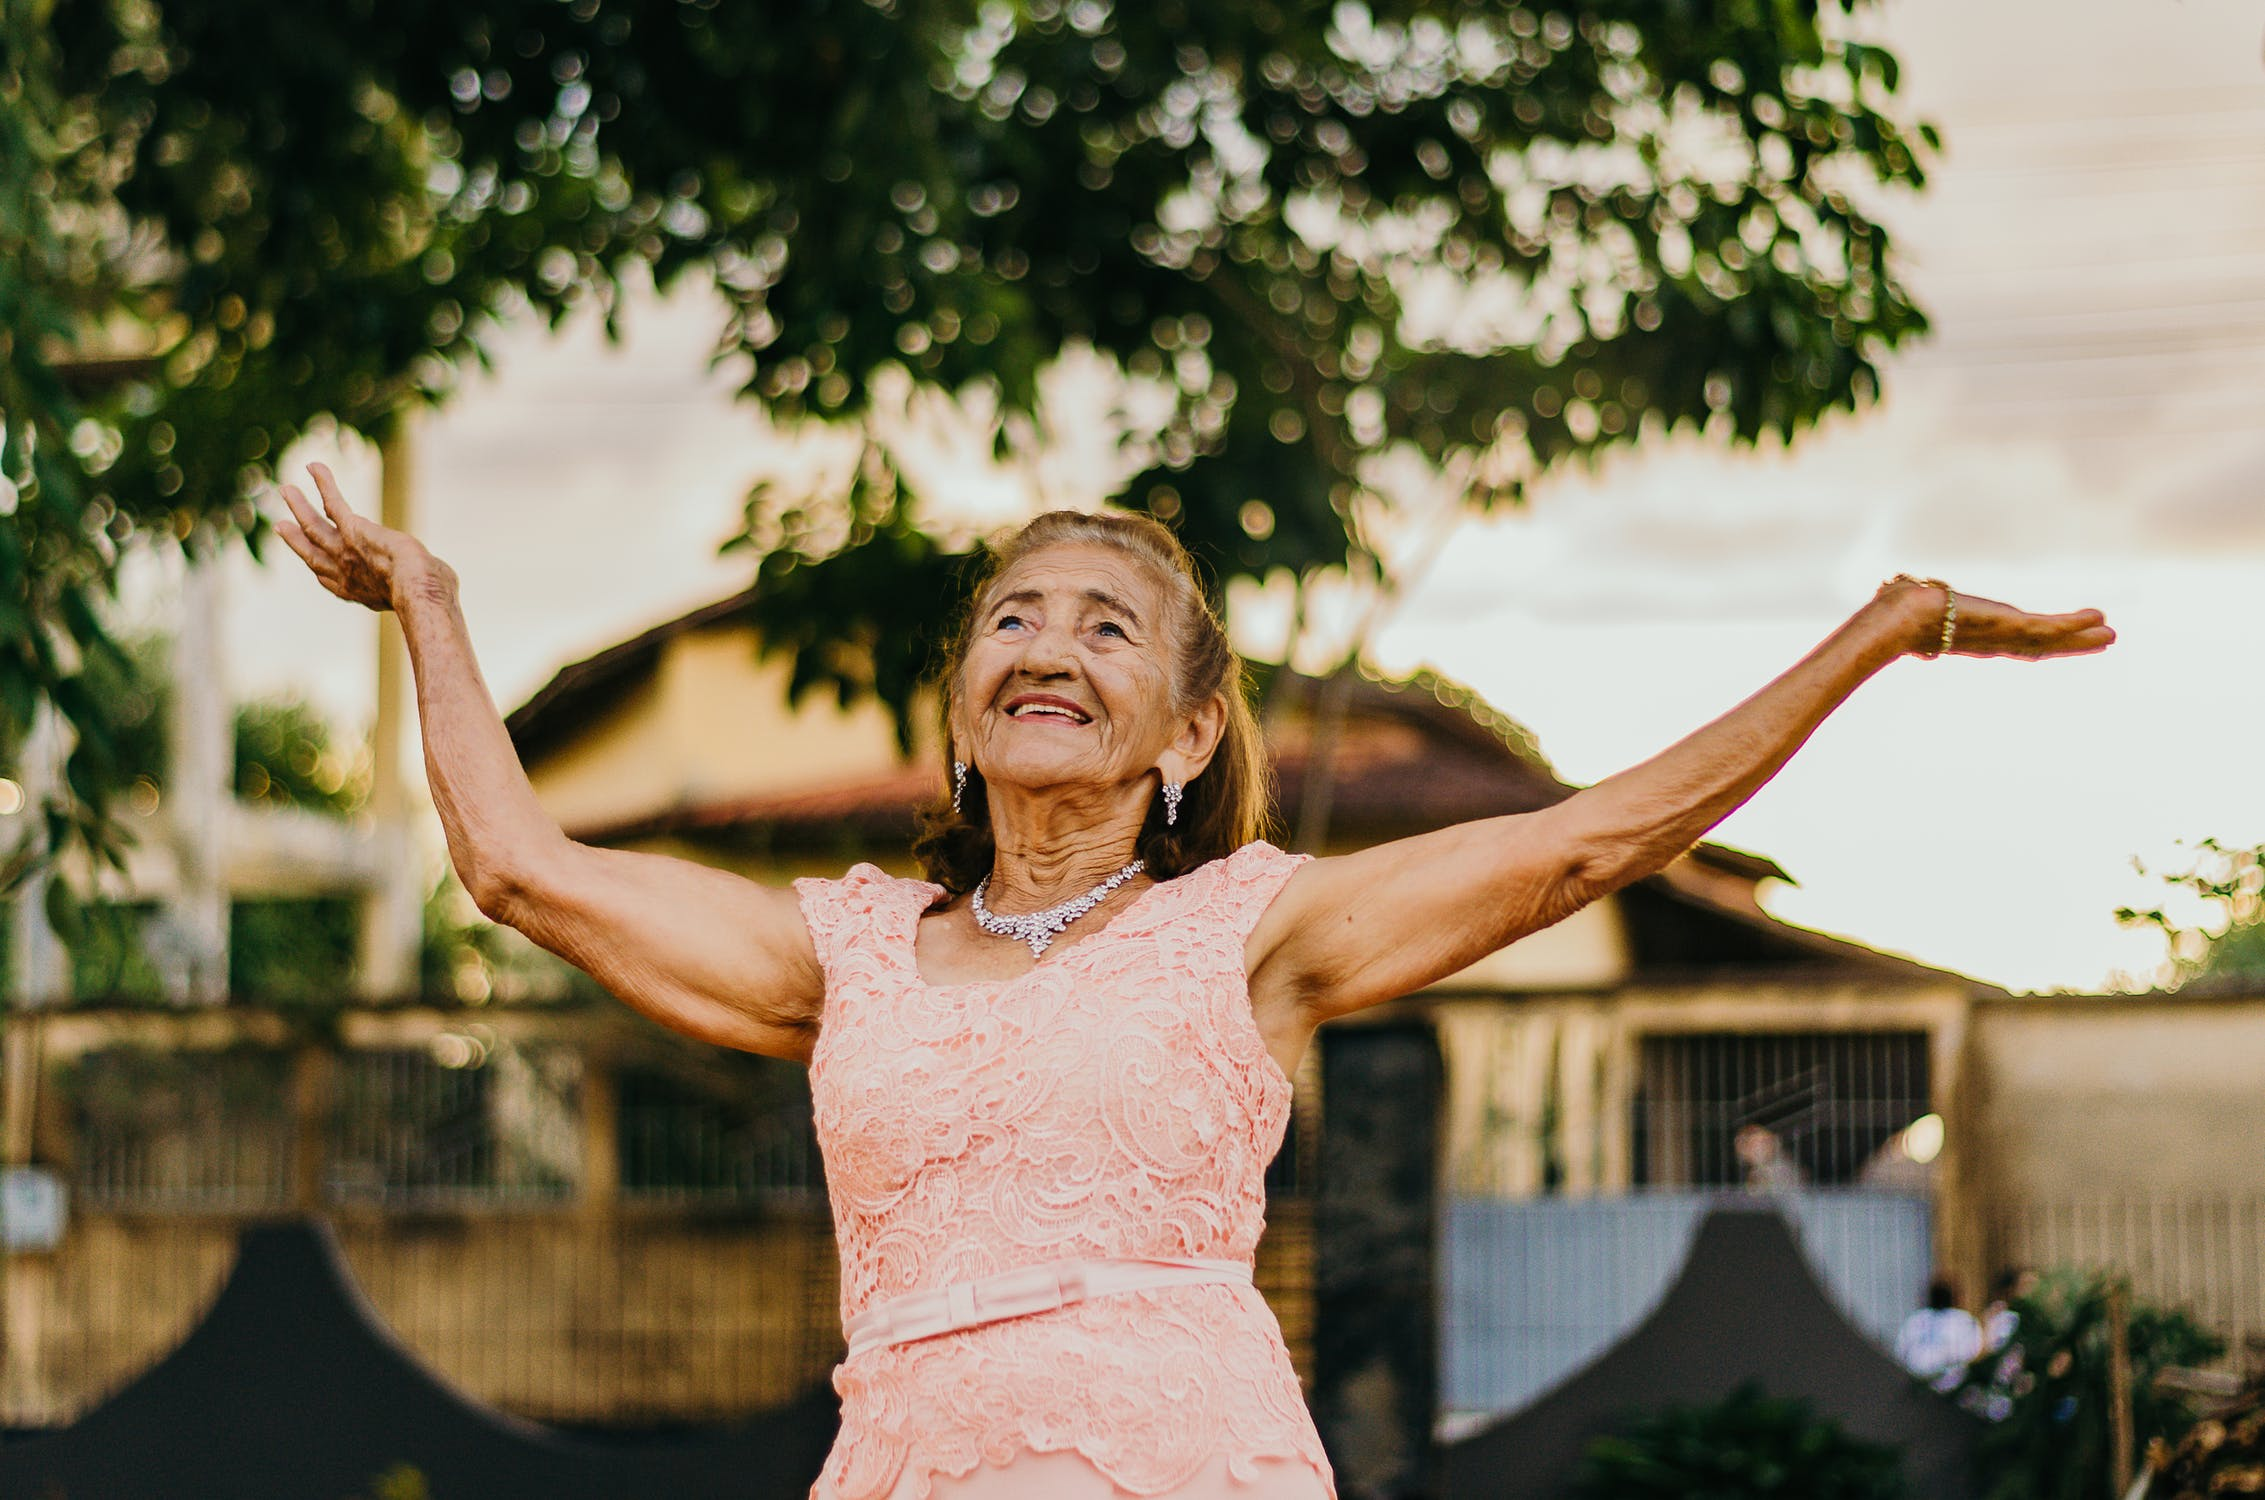 Jason's mother was delighted to see him again   Source: Pexels